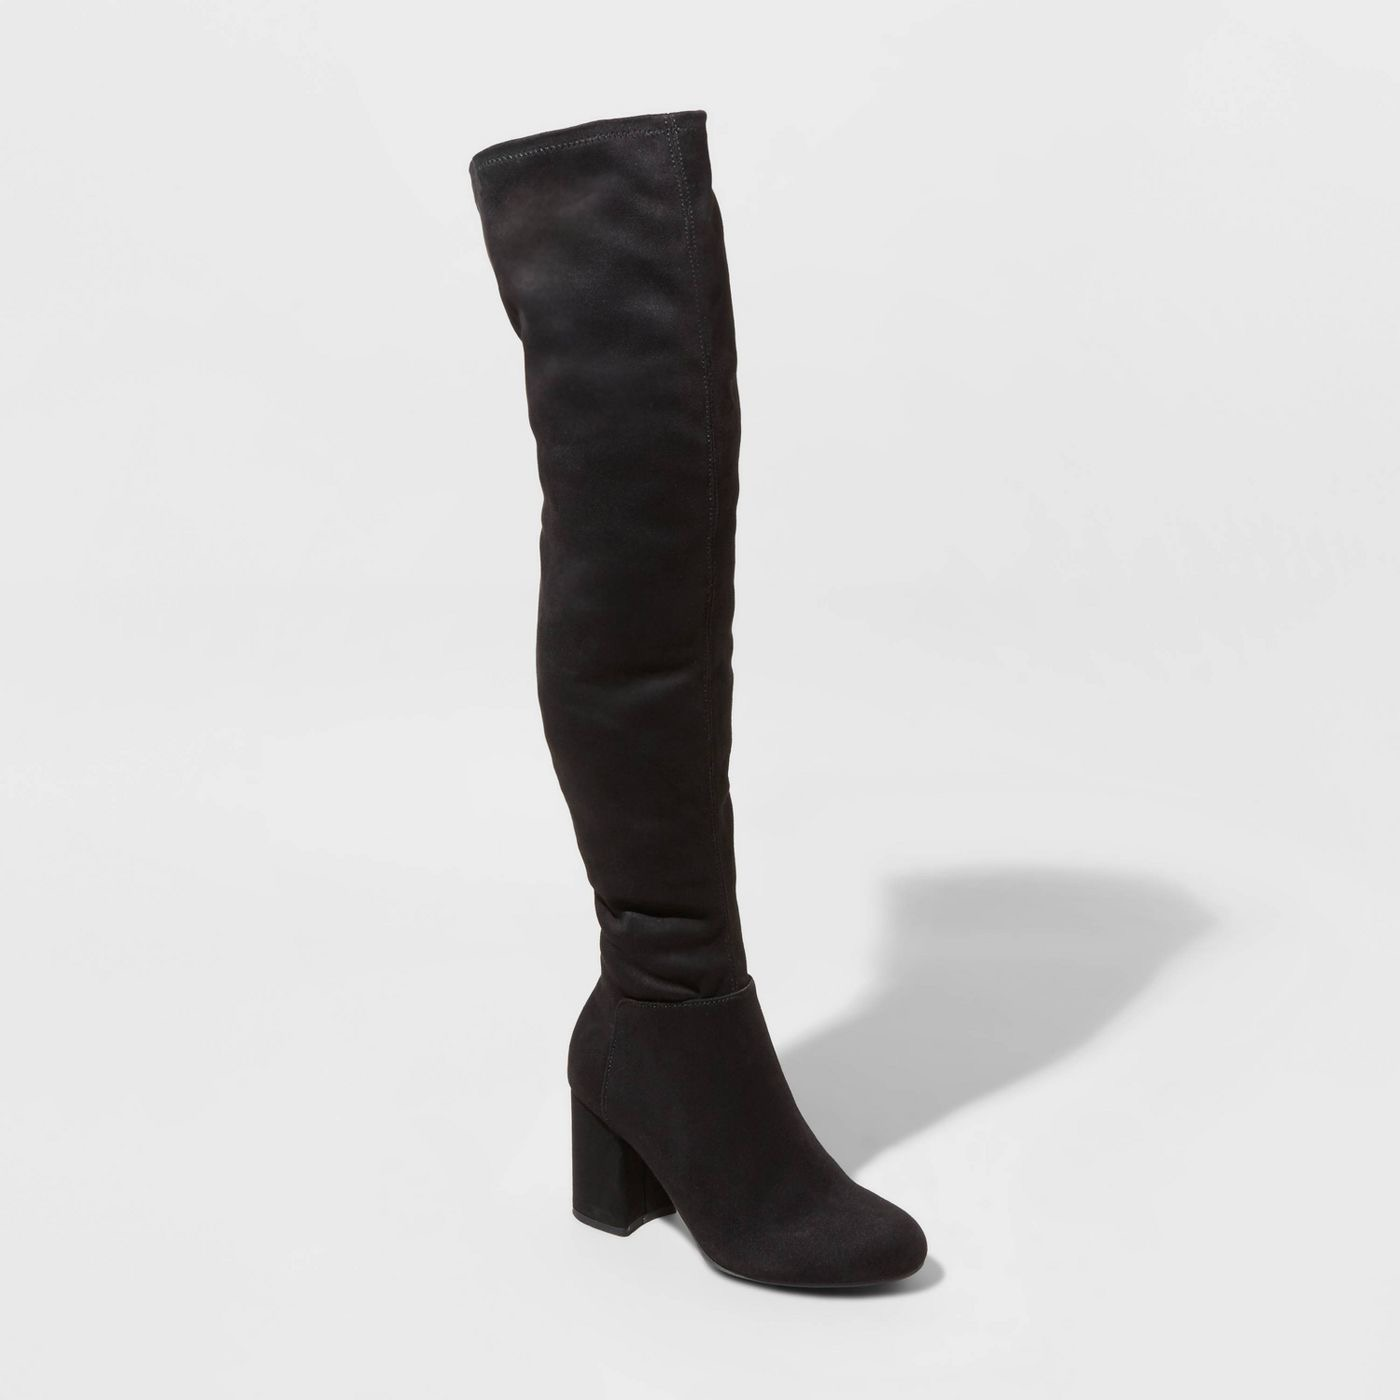 Women's Tonya Microsuede Heeled Fashion Boots - A New Day